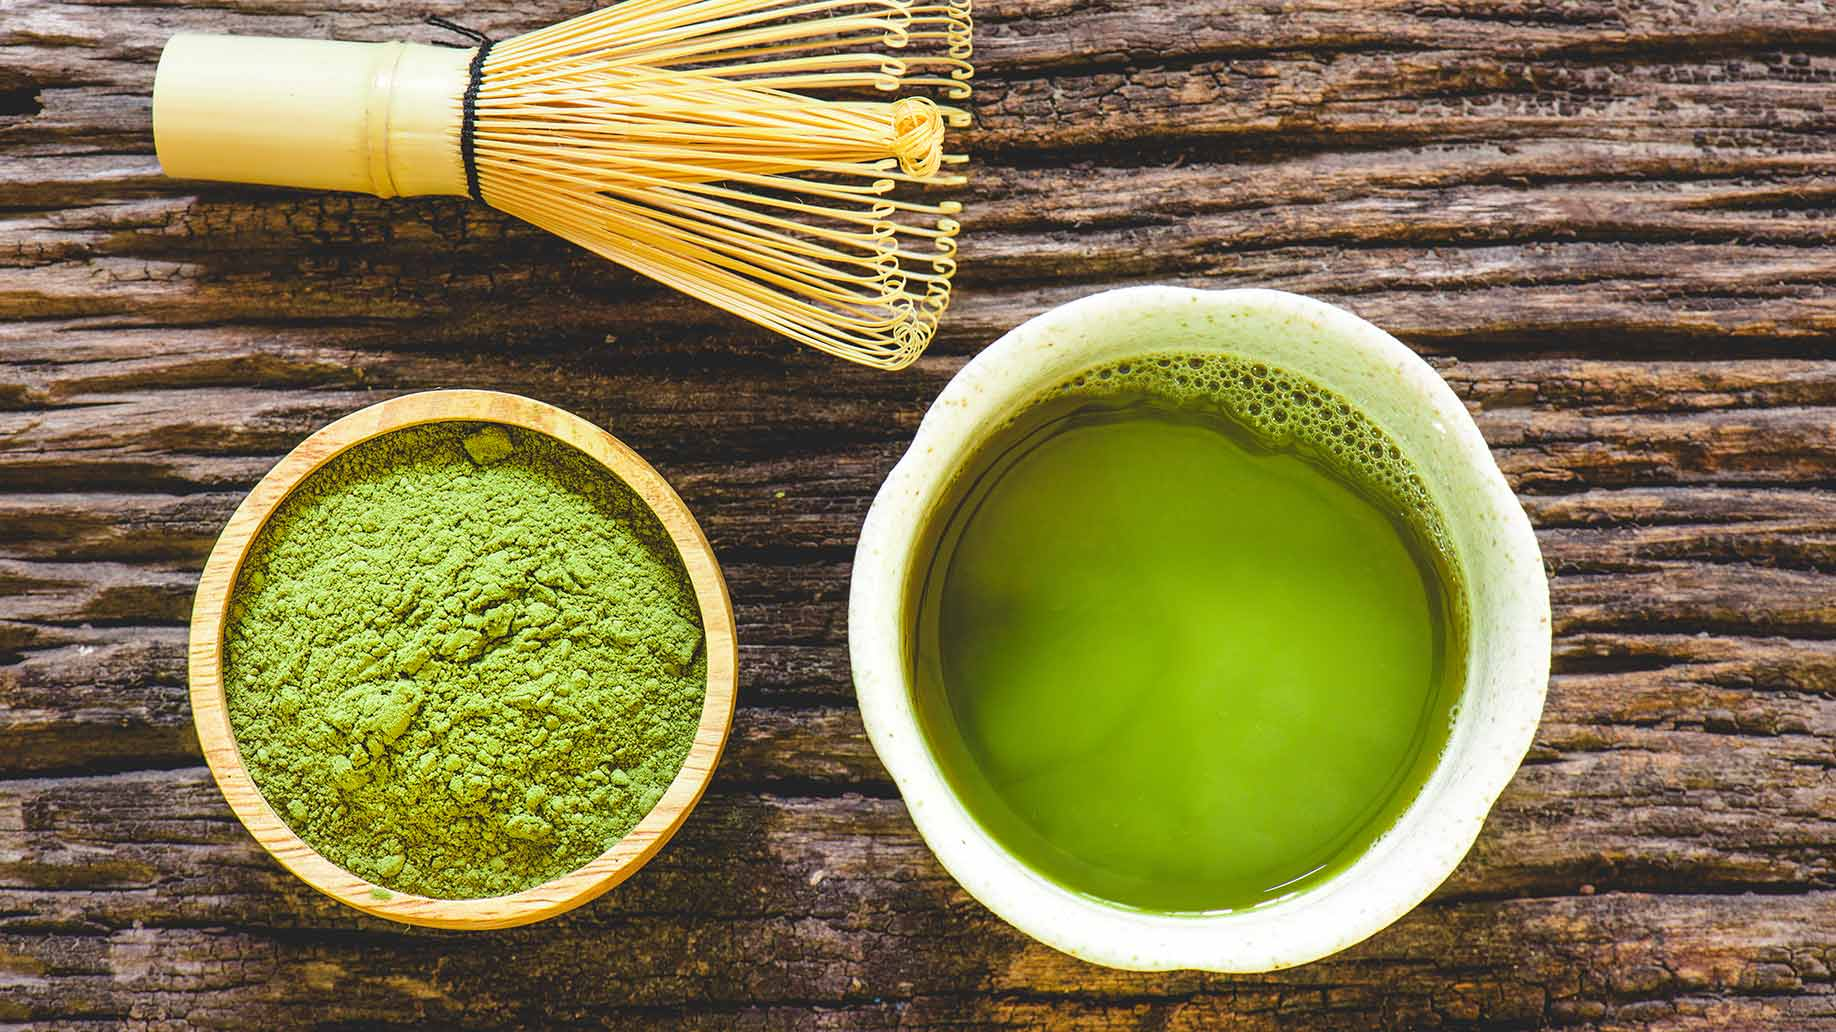 matcha green tea powder leaves grinded antioxidants natural health benefits